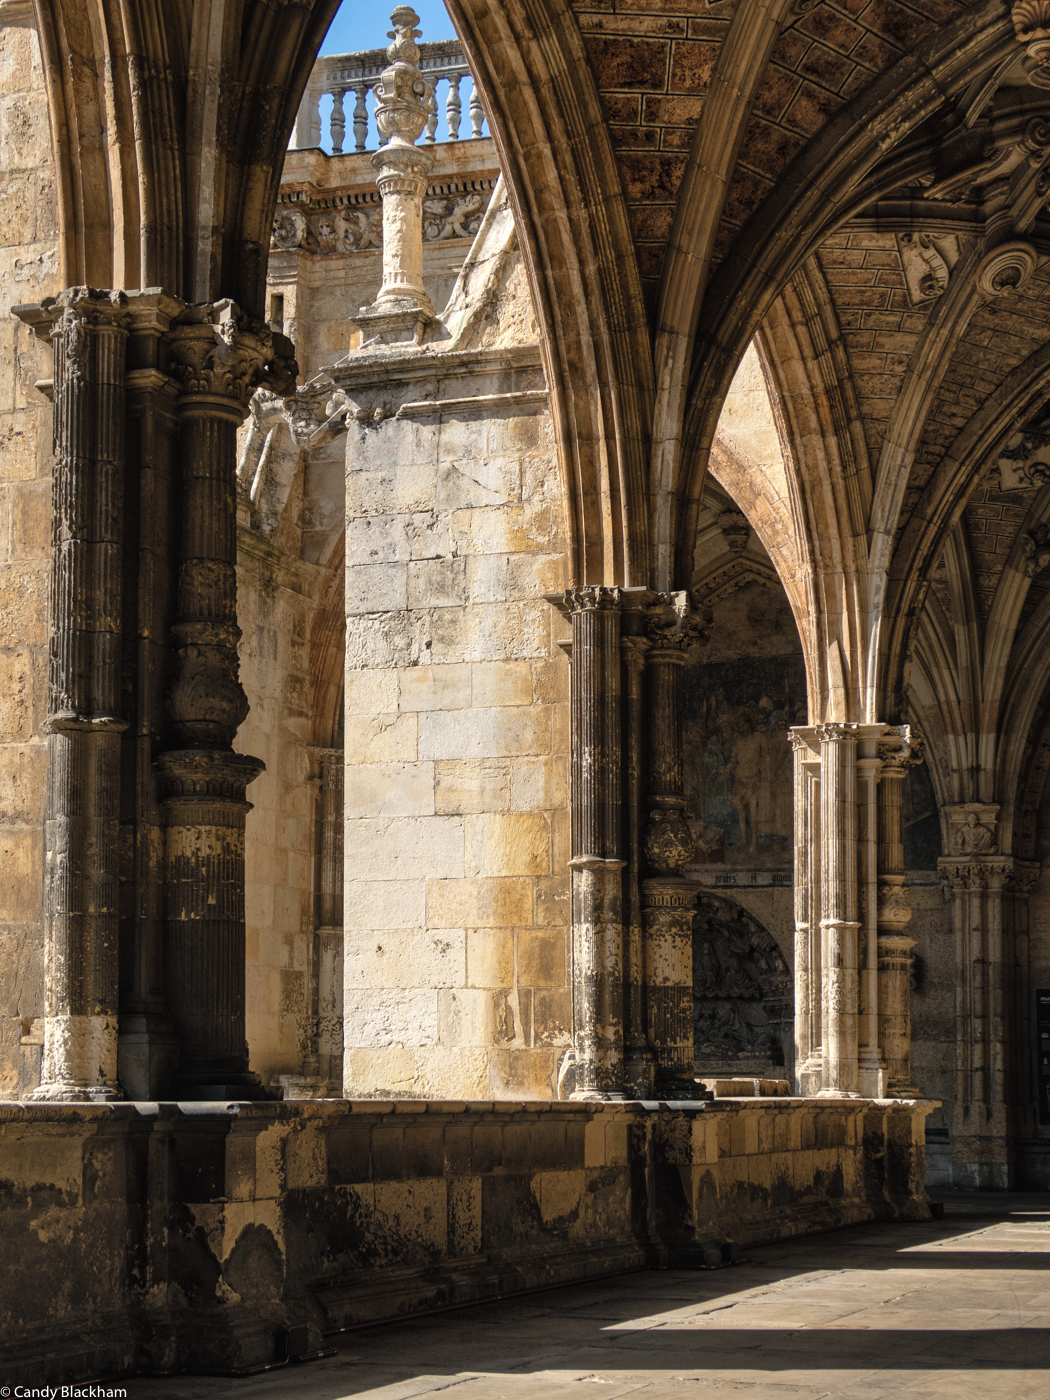 Cloister of Leon Cathedral